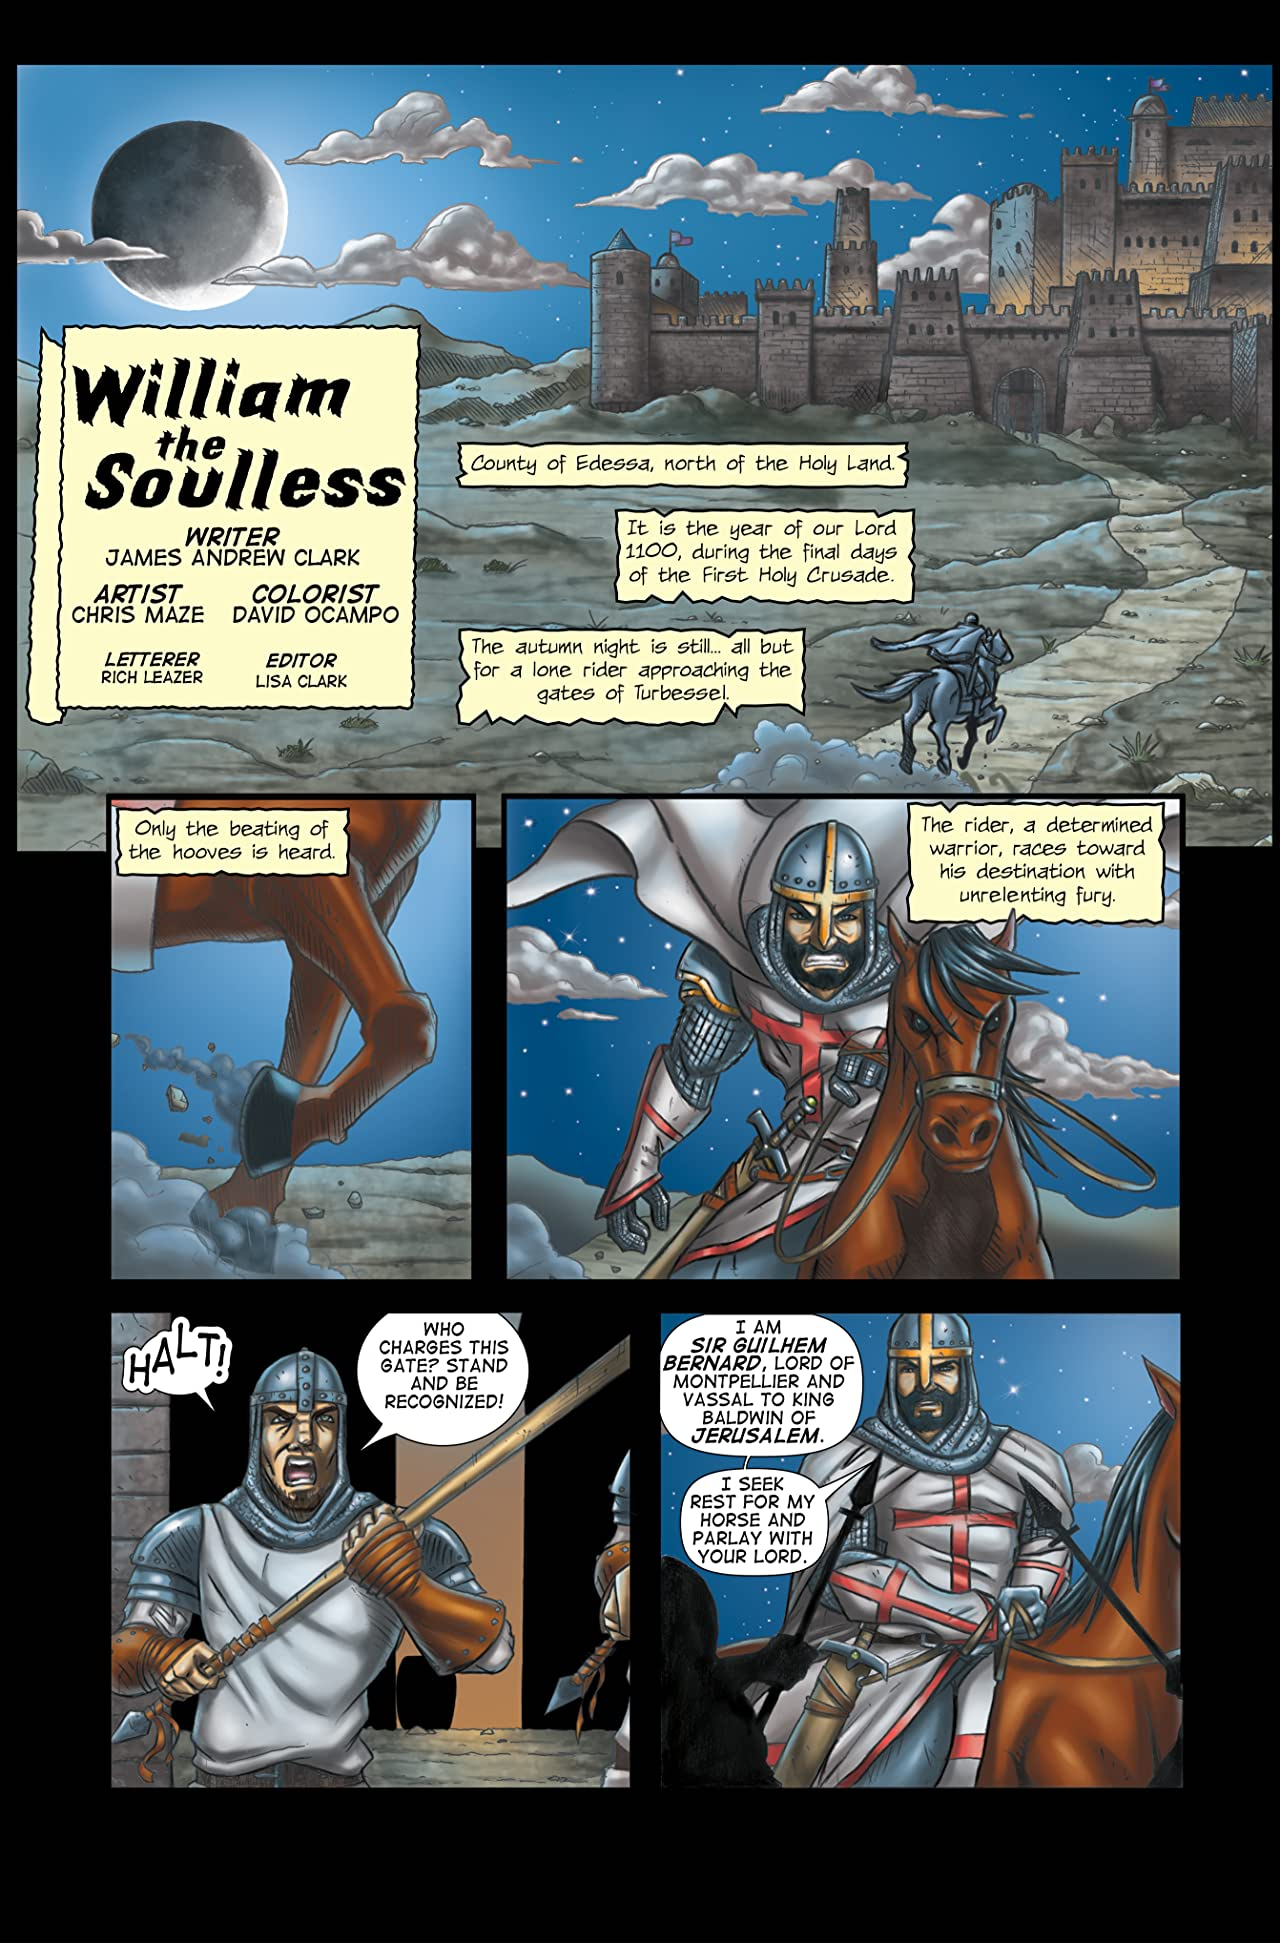 William the Soulless #0